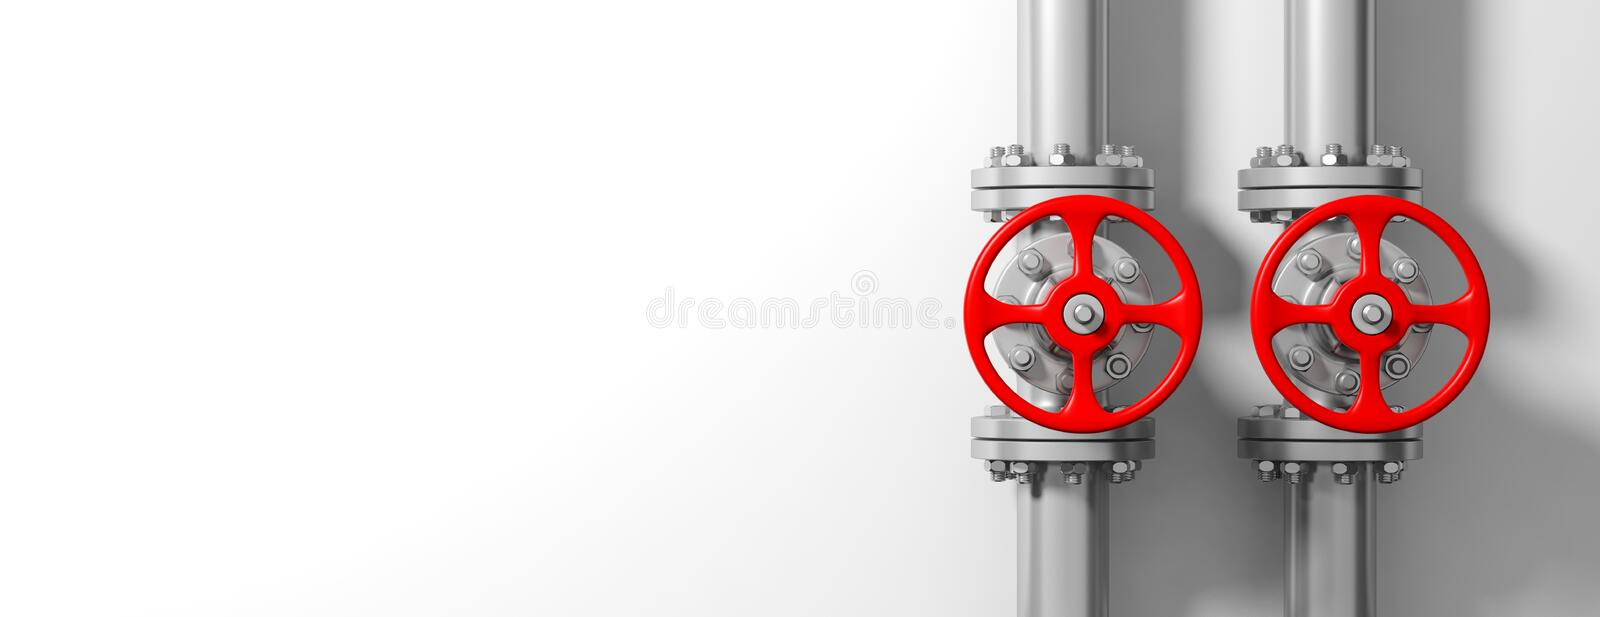 Industrial pipelines and valves on white wall background, banner, copy space. 3d illustration royalty free illustration